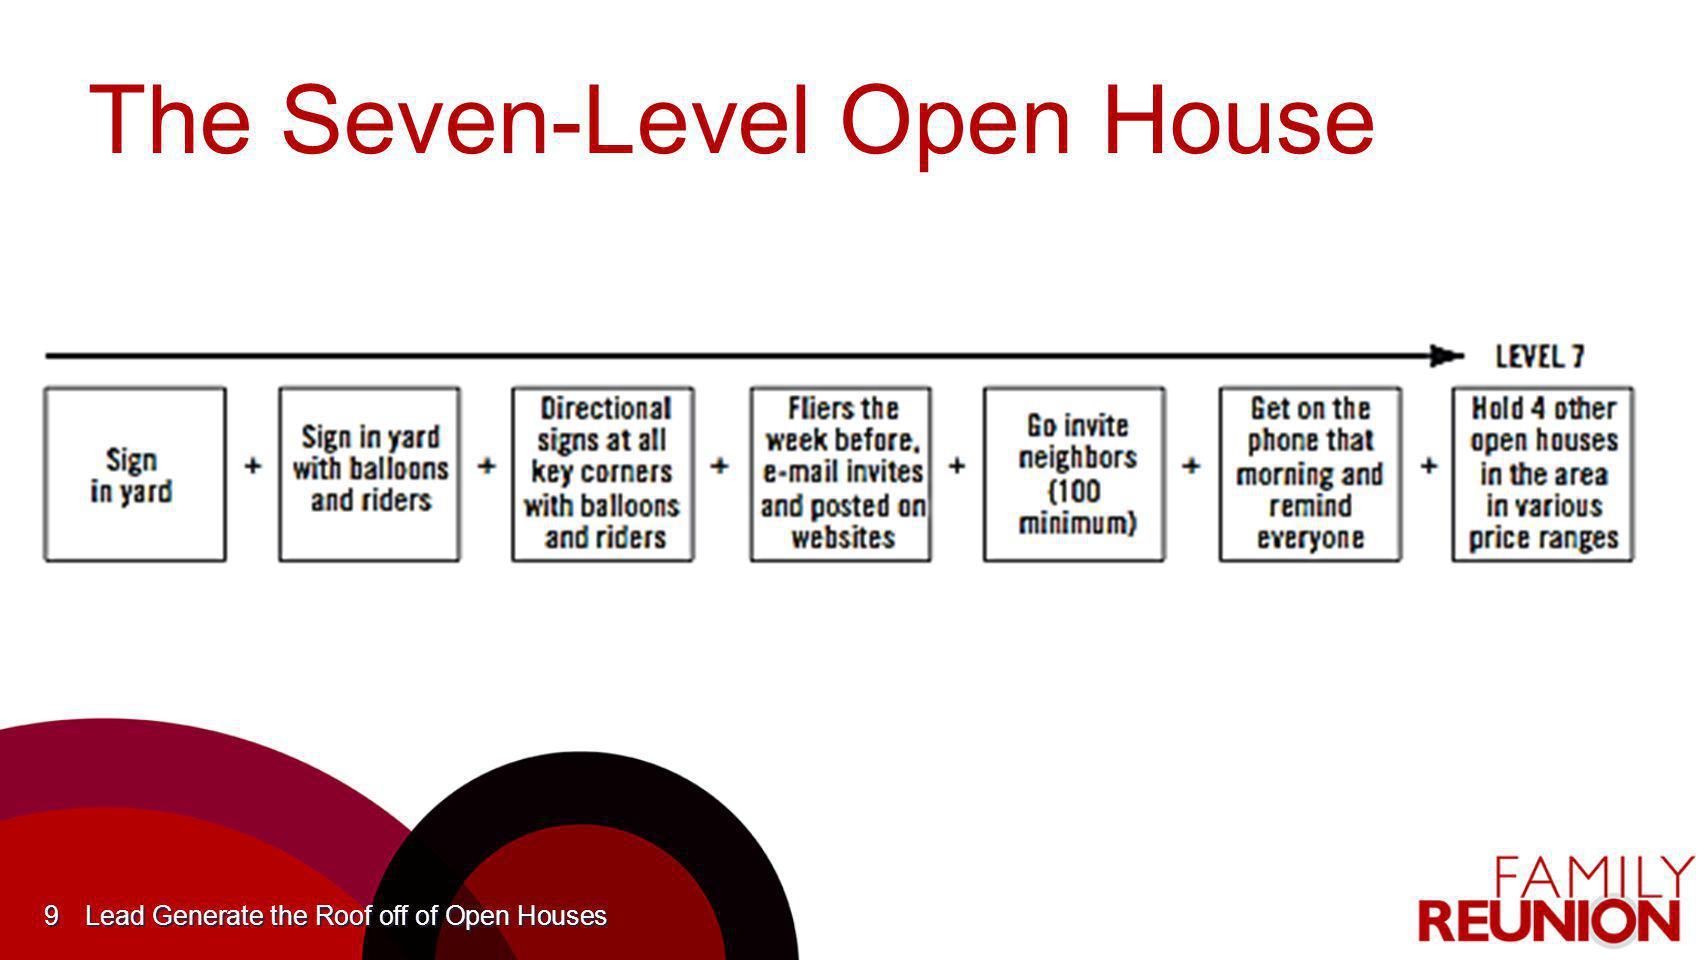 The Seven-Level Open House